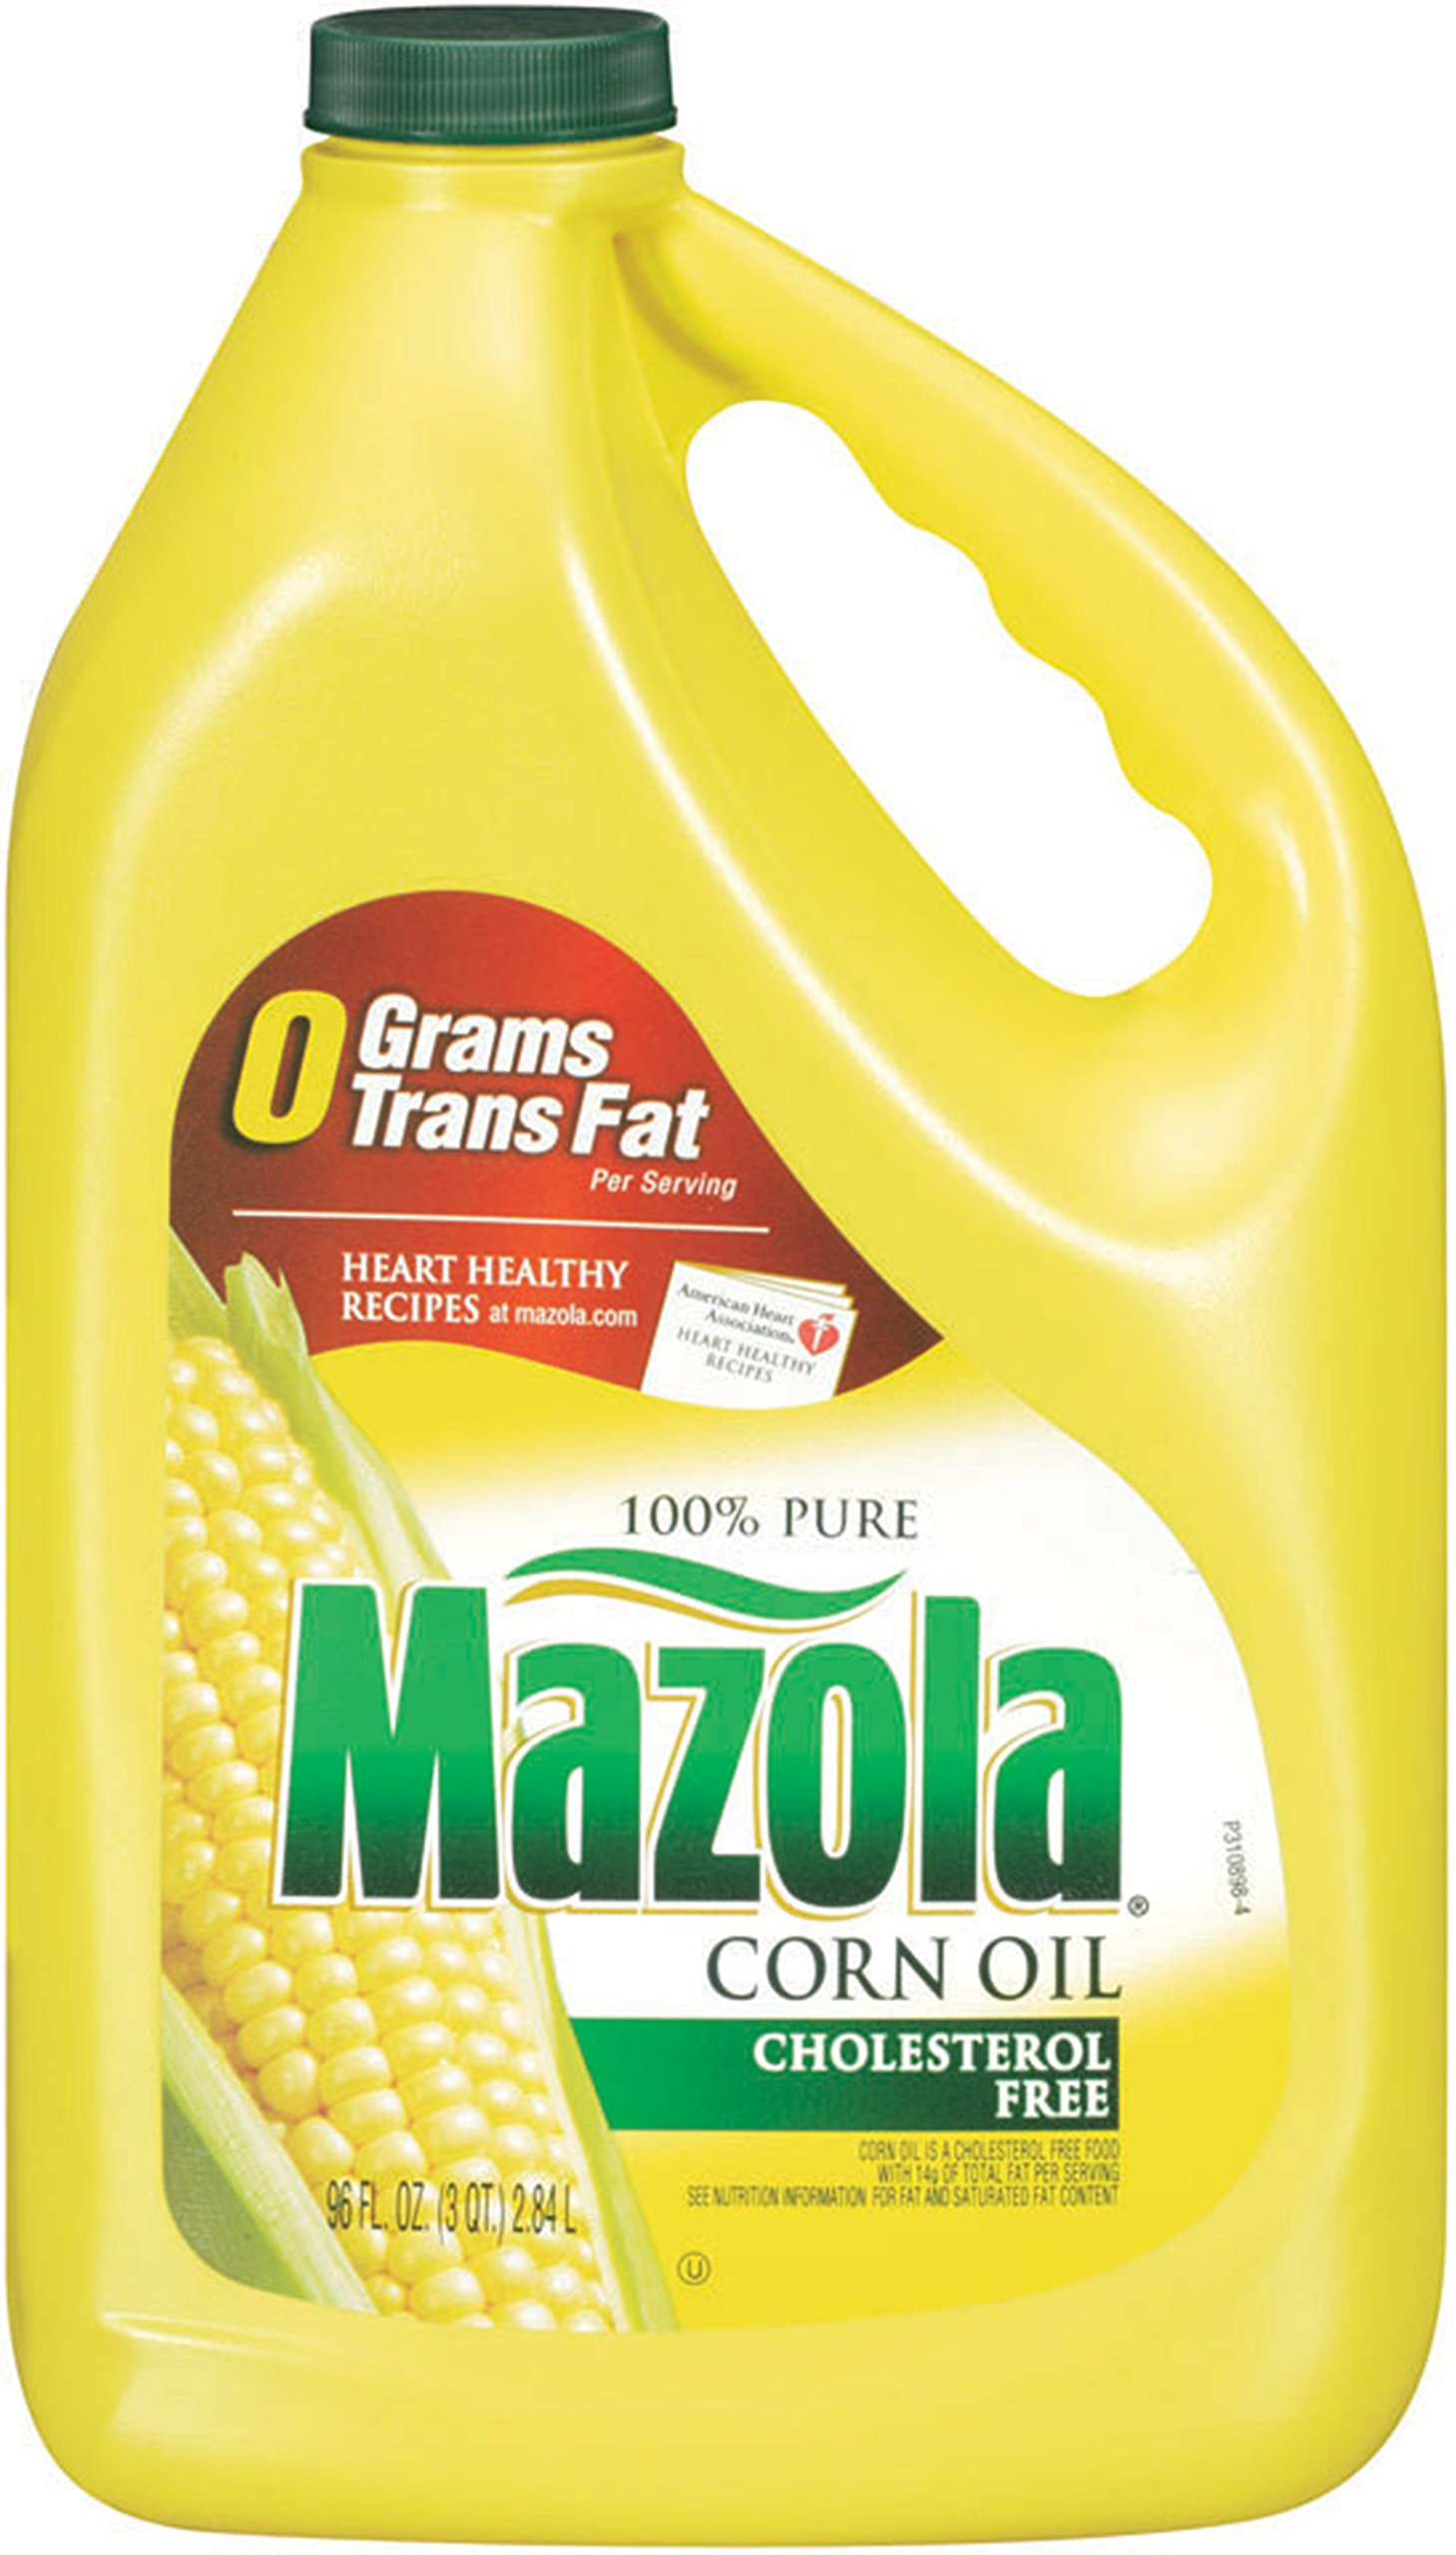 Mazola Corn Oil - 96 oz